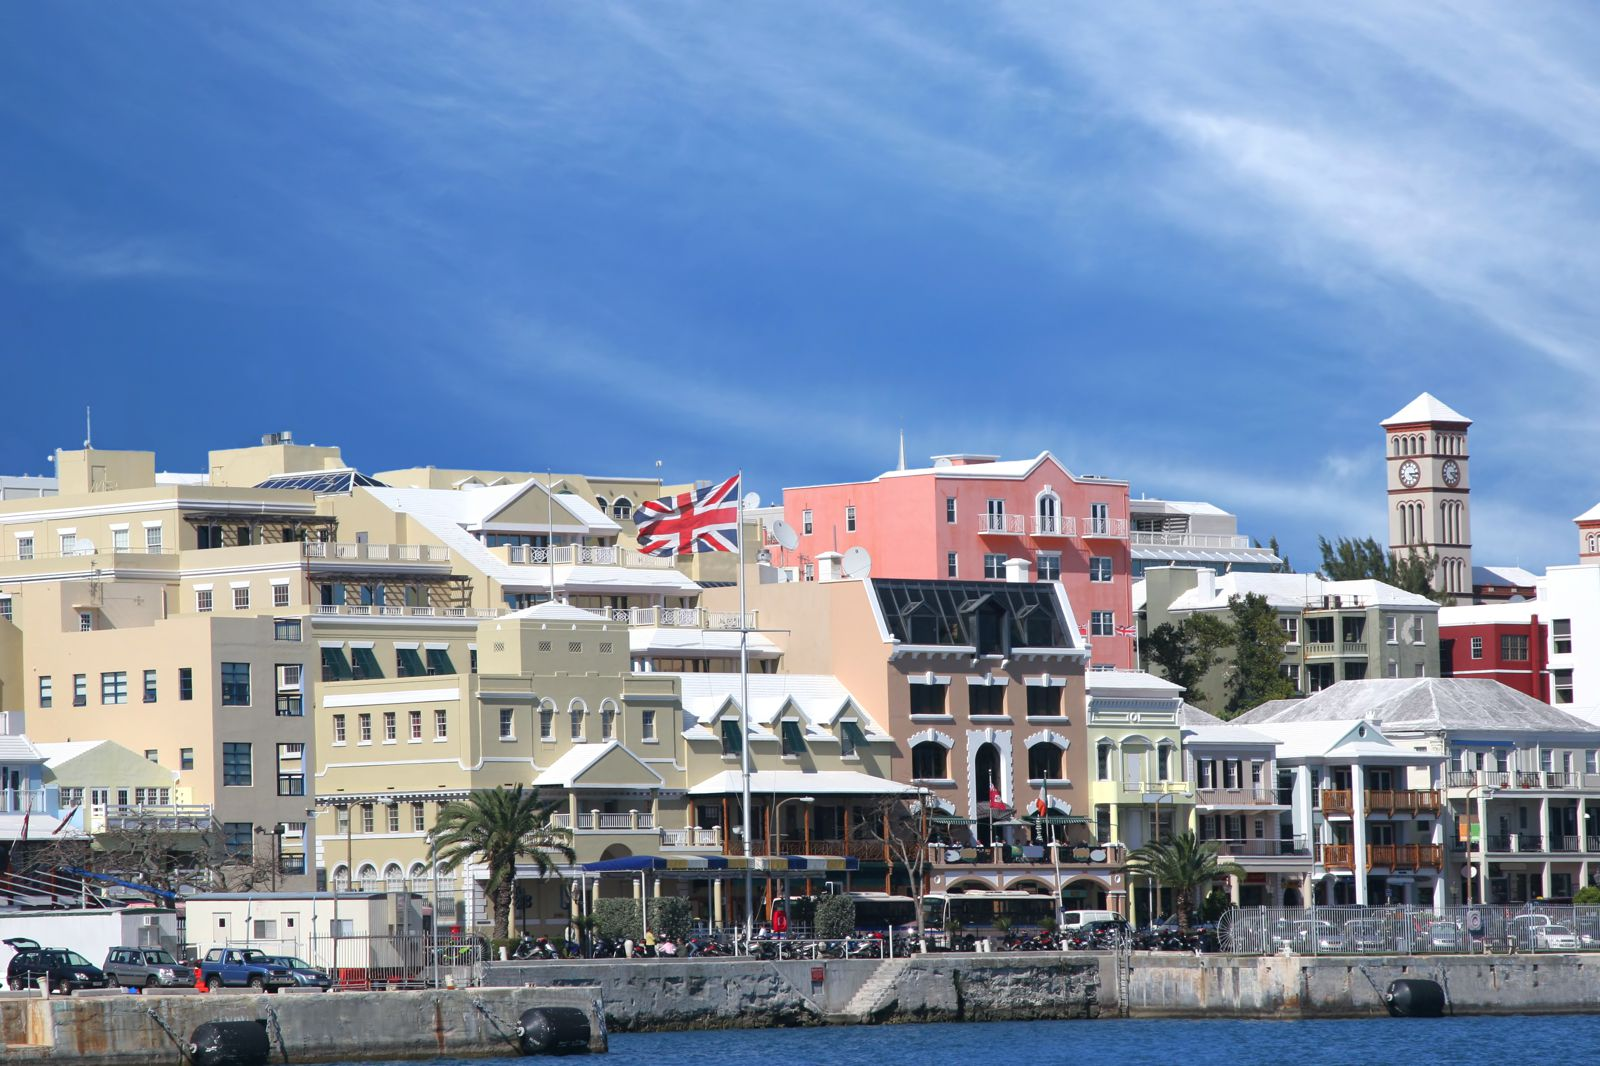 11 Things You Have To See and Do When Visiting Bermuda (2)